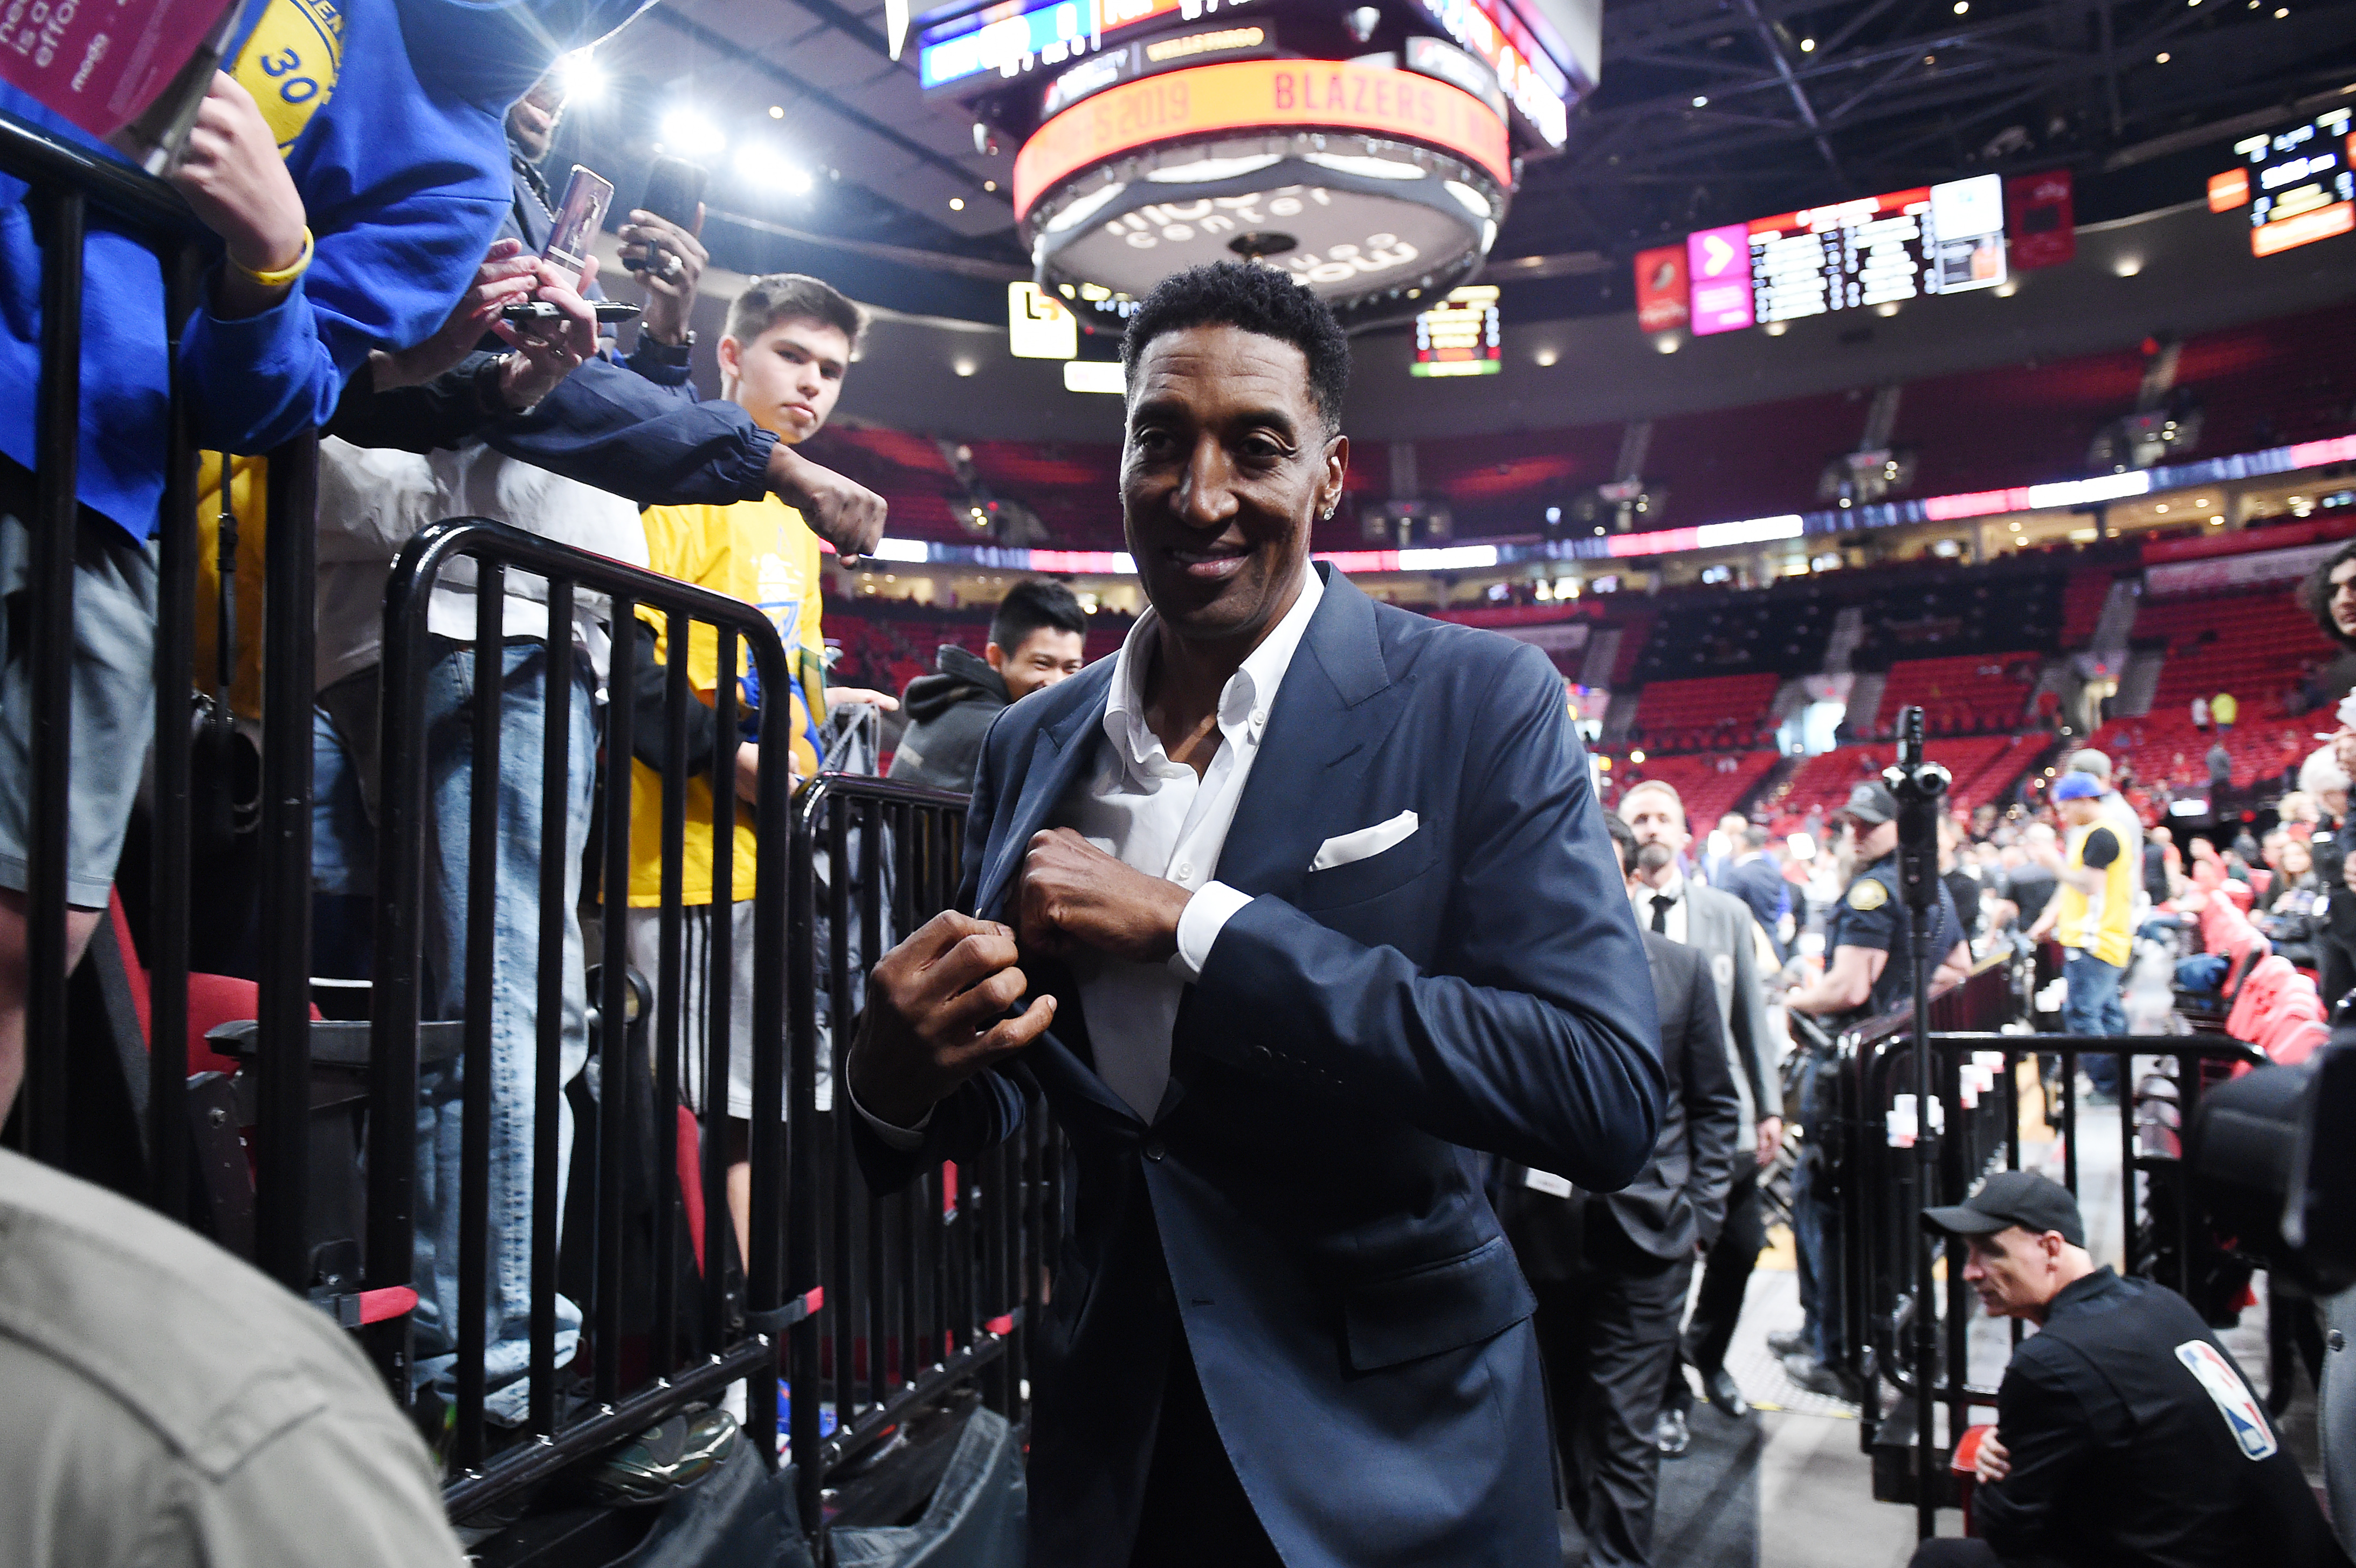 NBA player Scottie Pippen